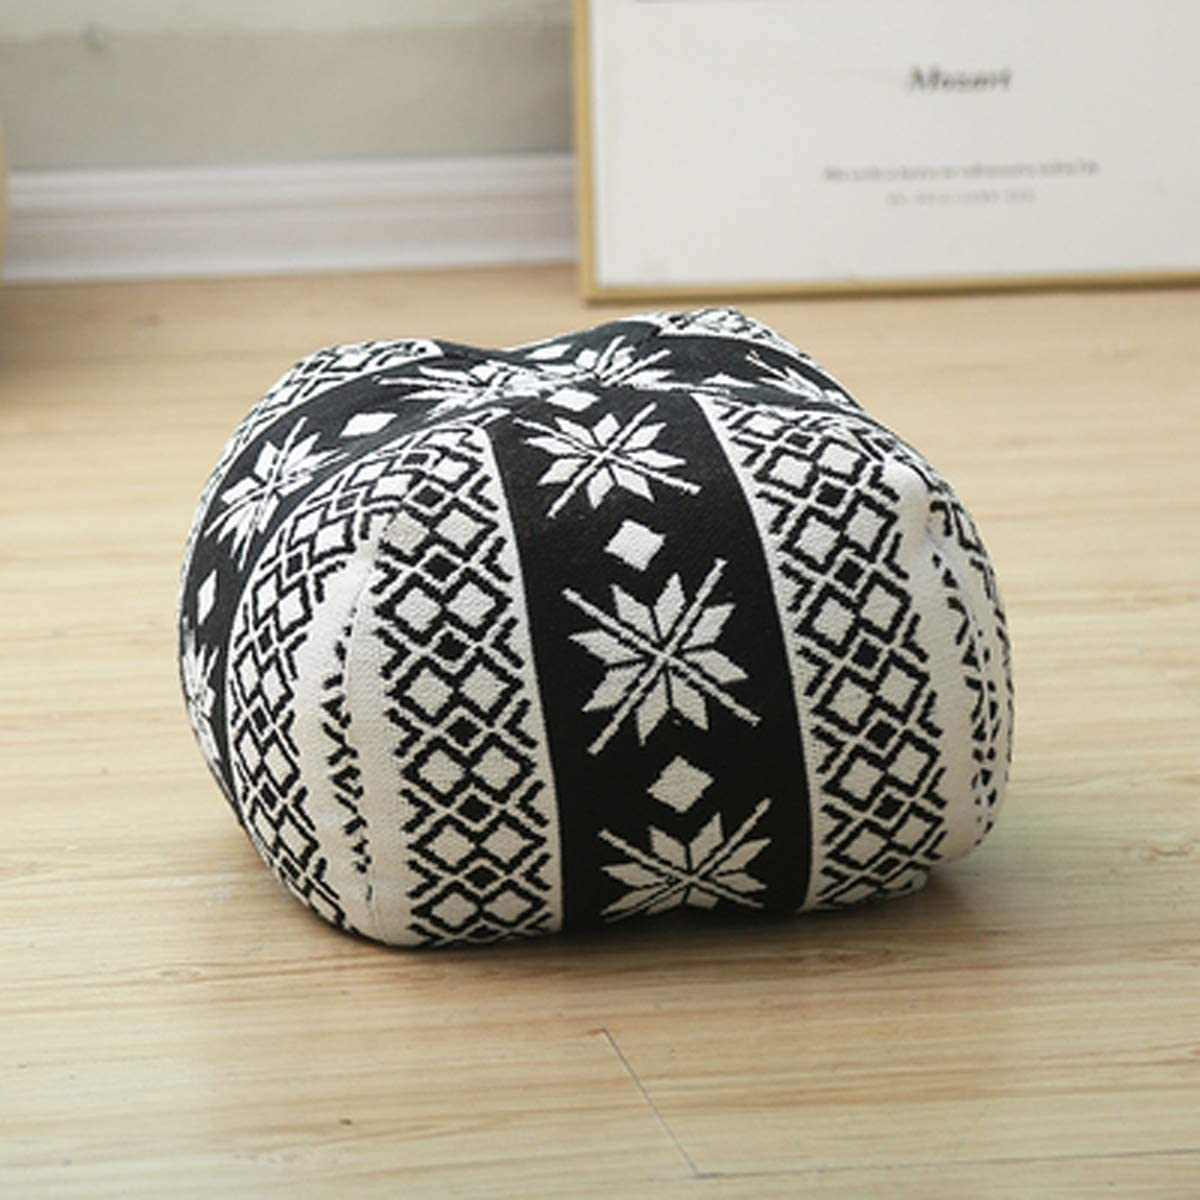 RISEON Boho Hand Woven Contemporary Cotton Linen Fabric Pouf Cover Footstool Ottoman Poufs Unstuffed-Square Floor Cushion Footrest Cover for Living Room, Bedroom and Under Desk Black White